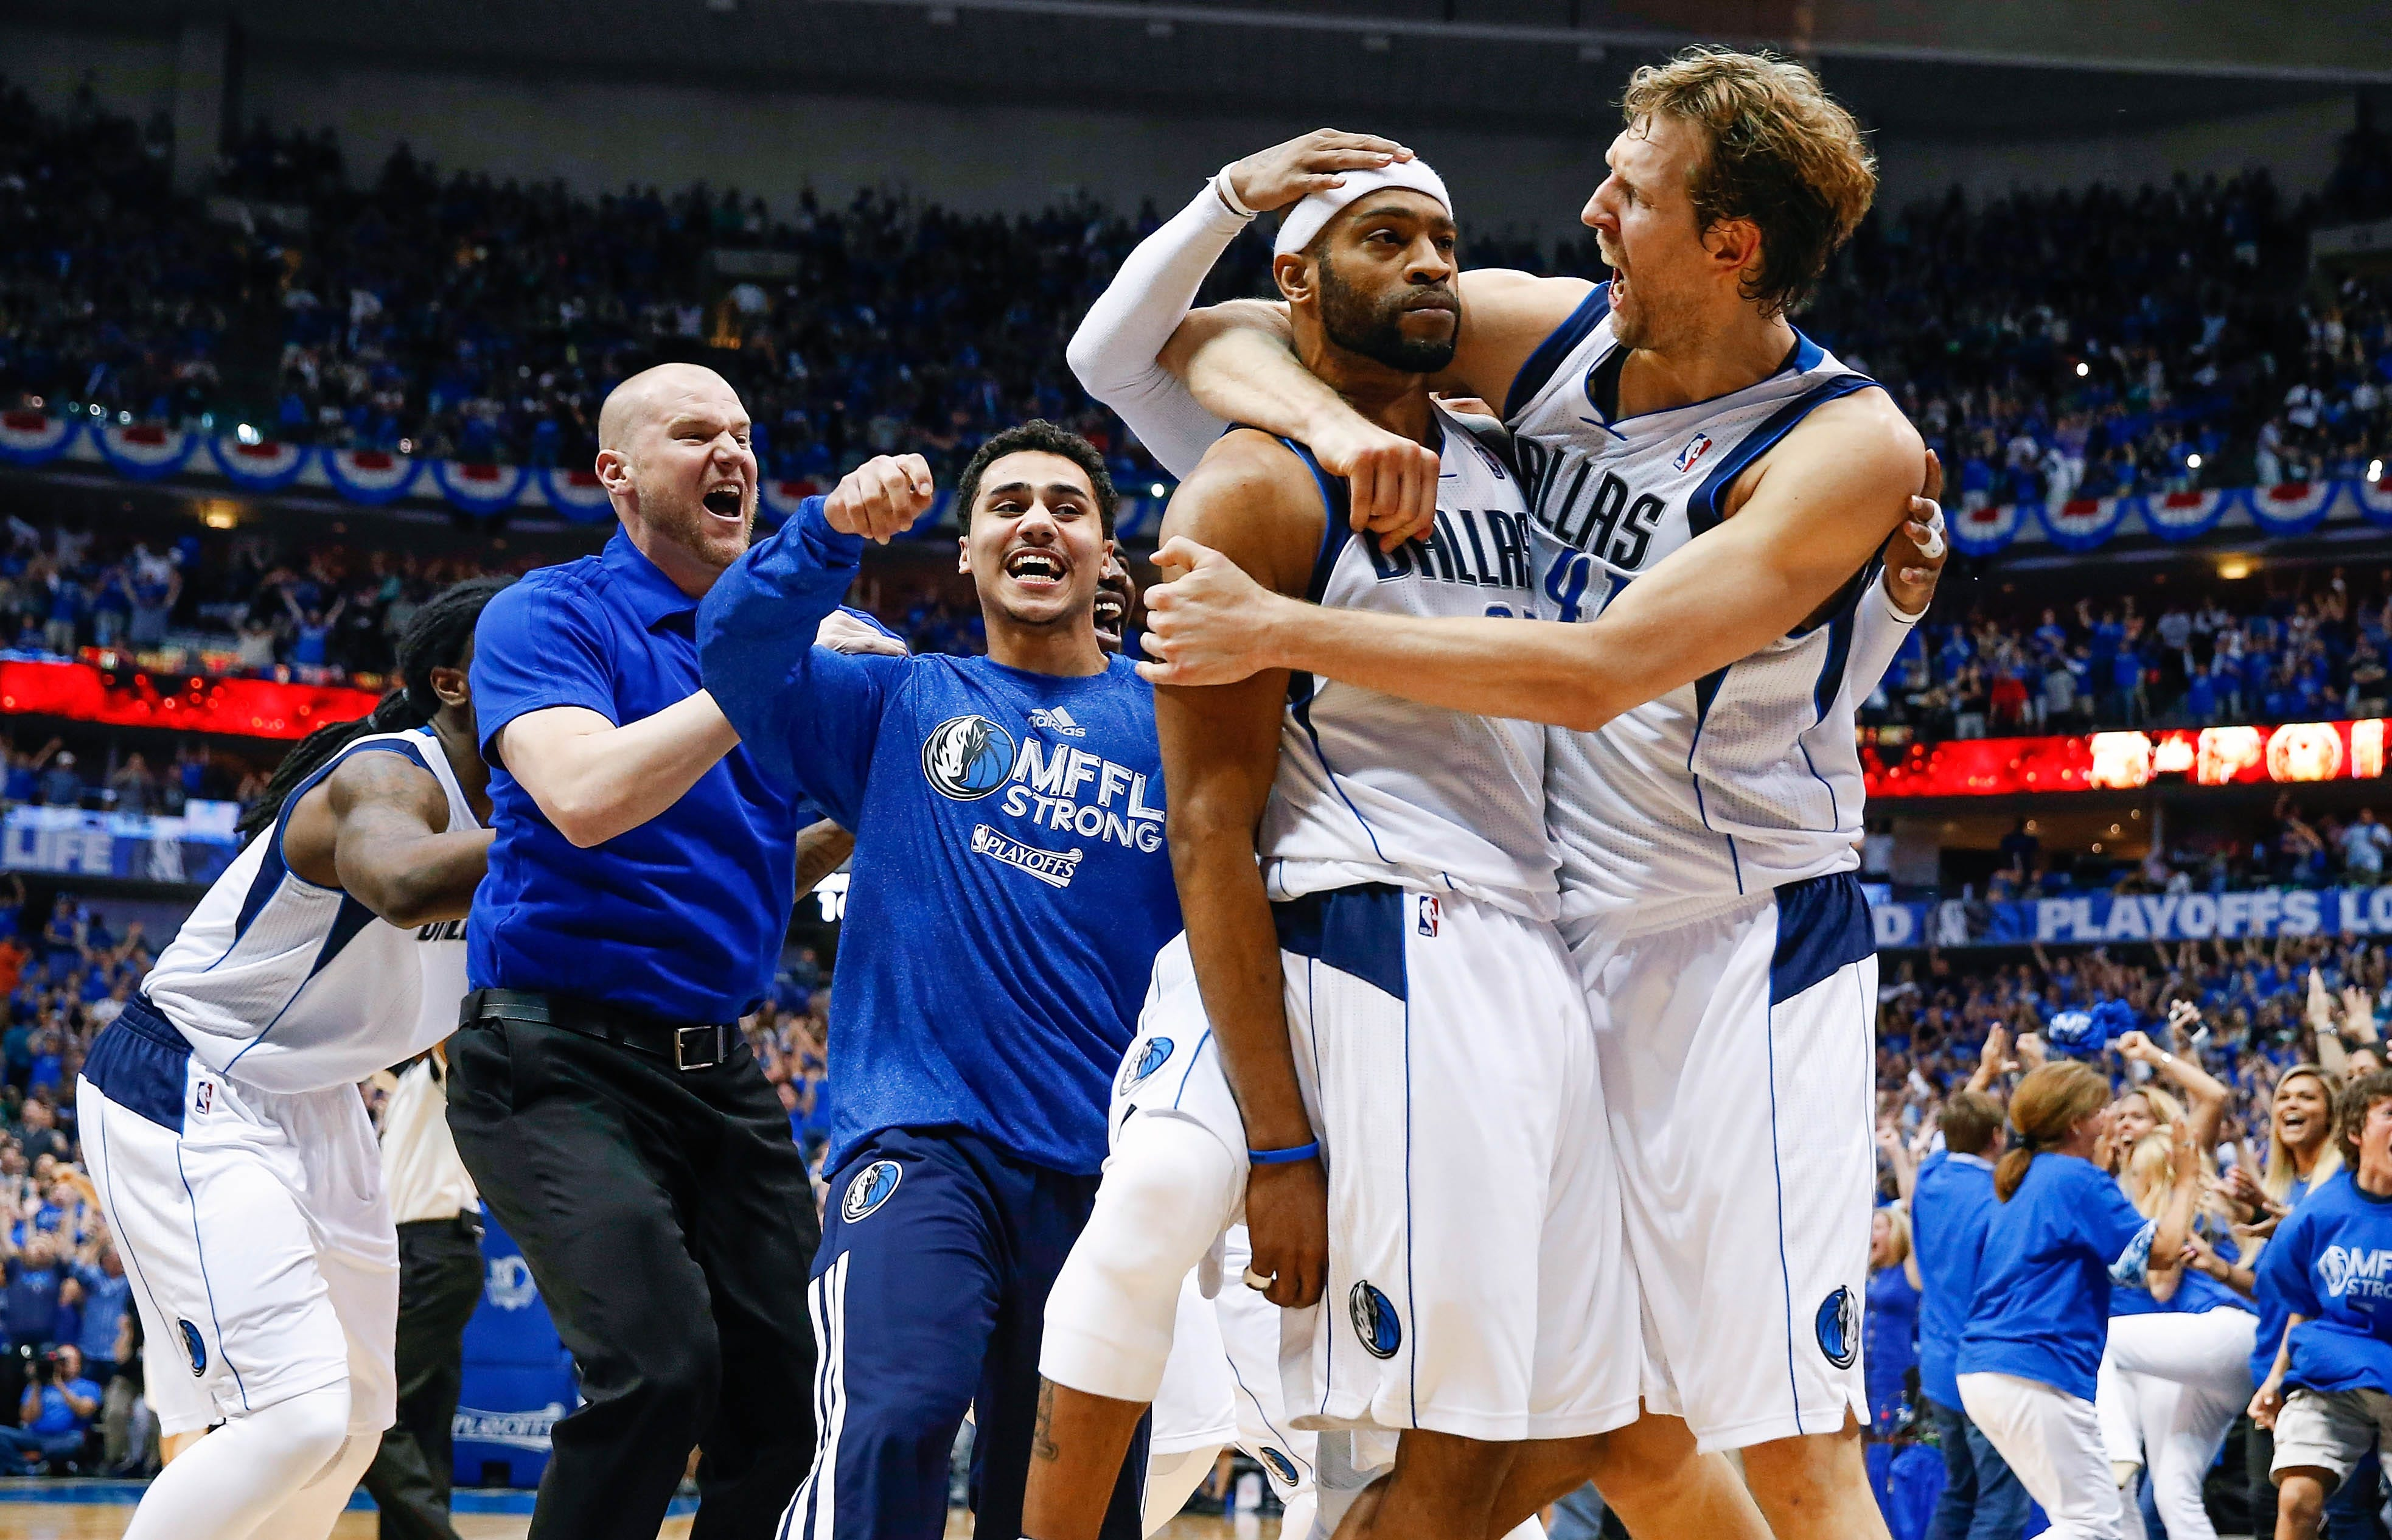 buzzer-beater gives Mavs 2-1 lead on Spurs